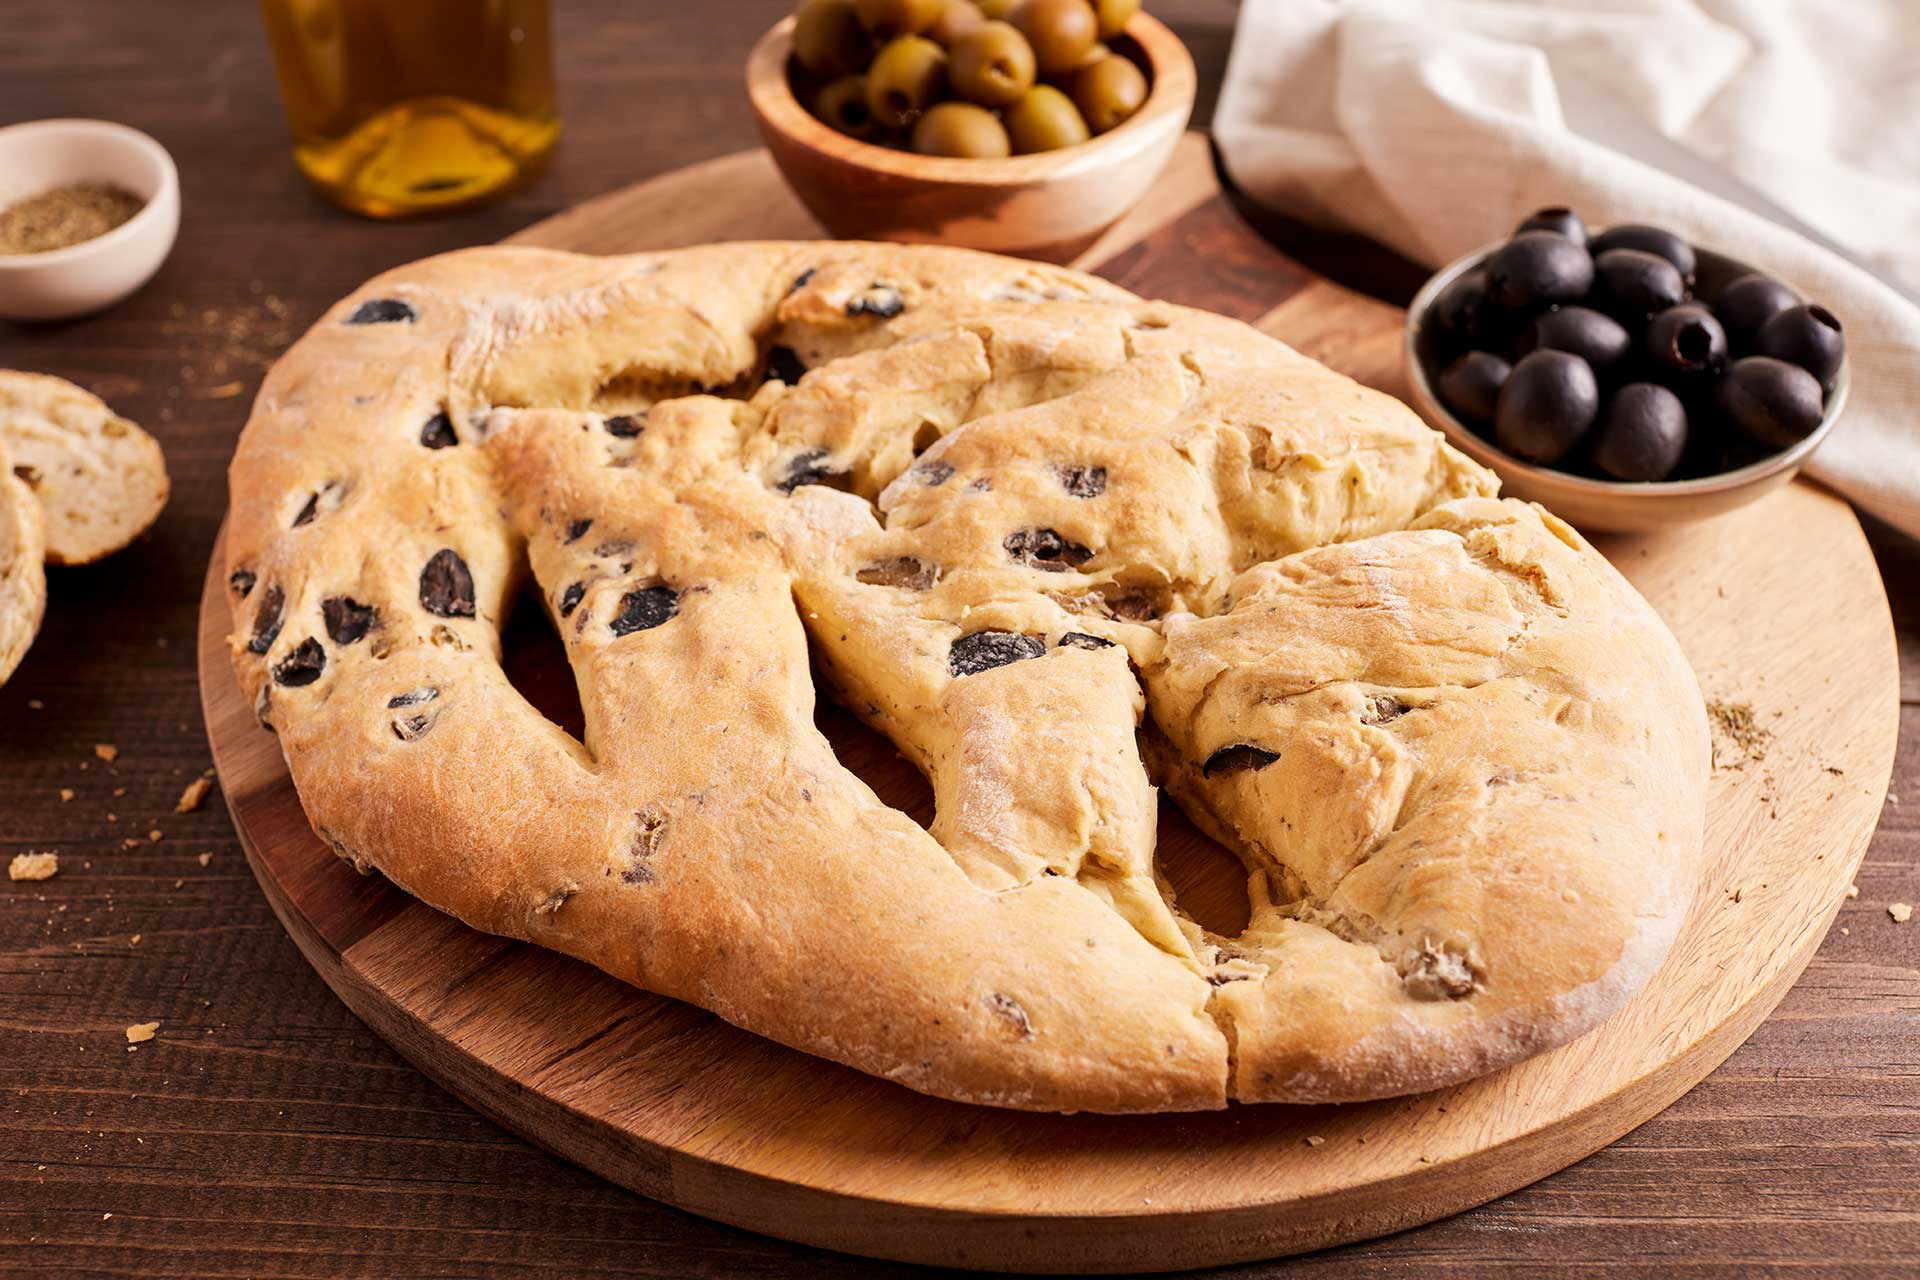 Fougasse - Olive Bread from Provence